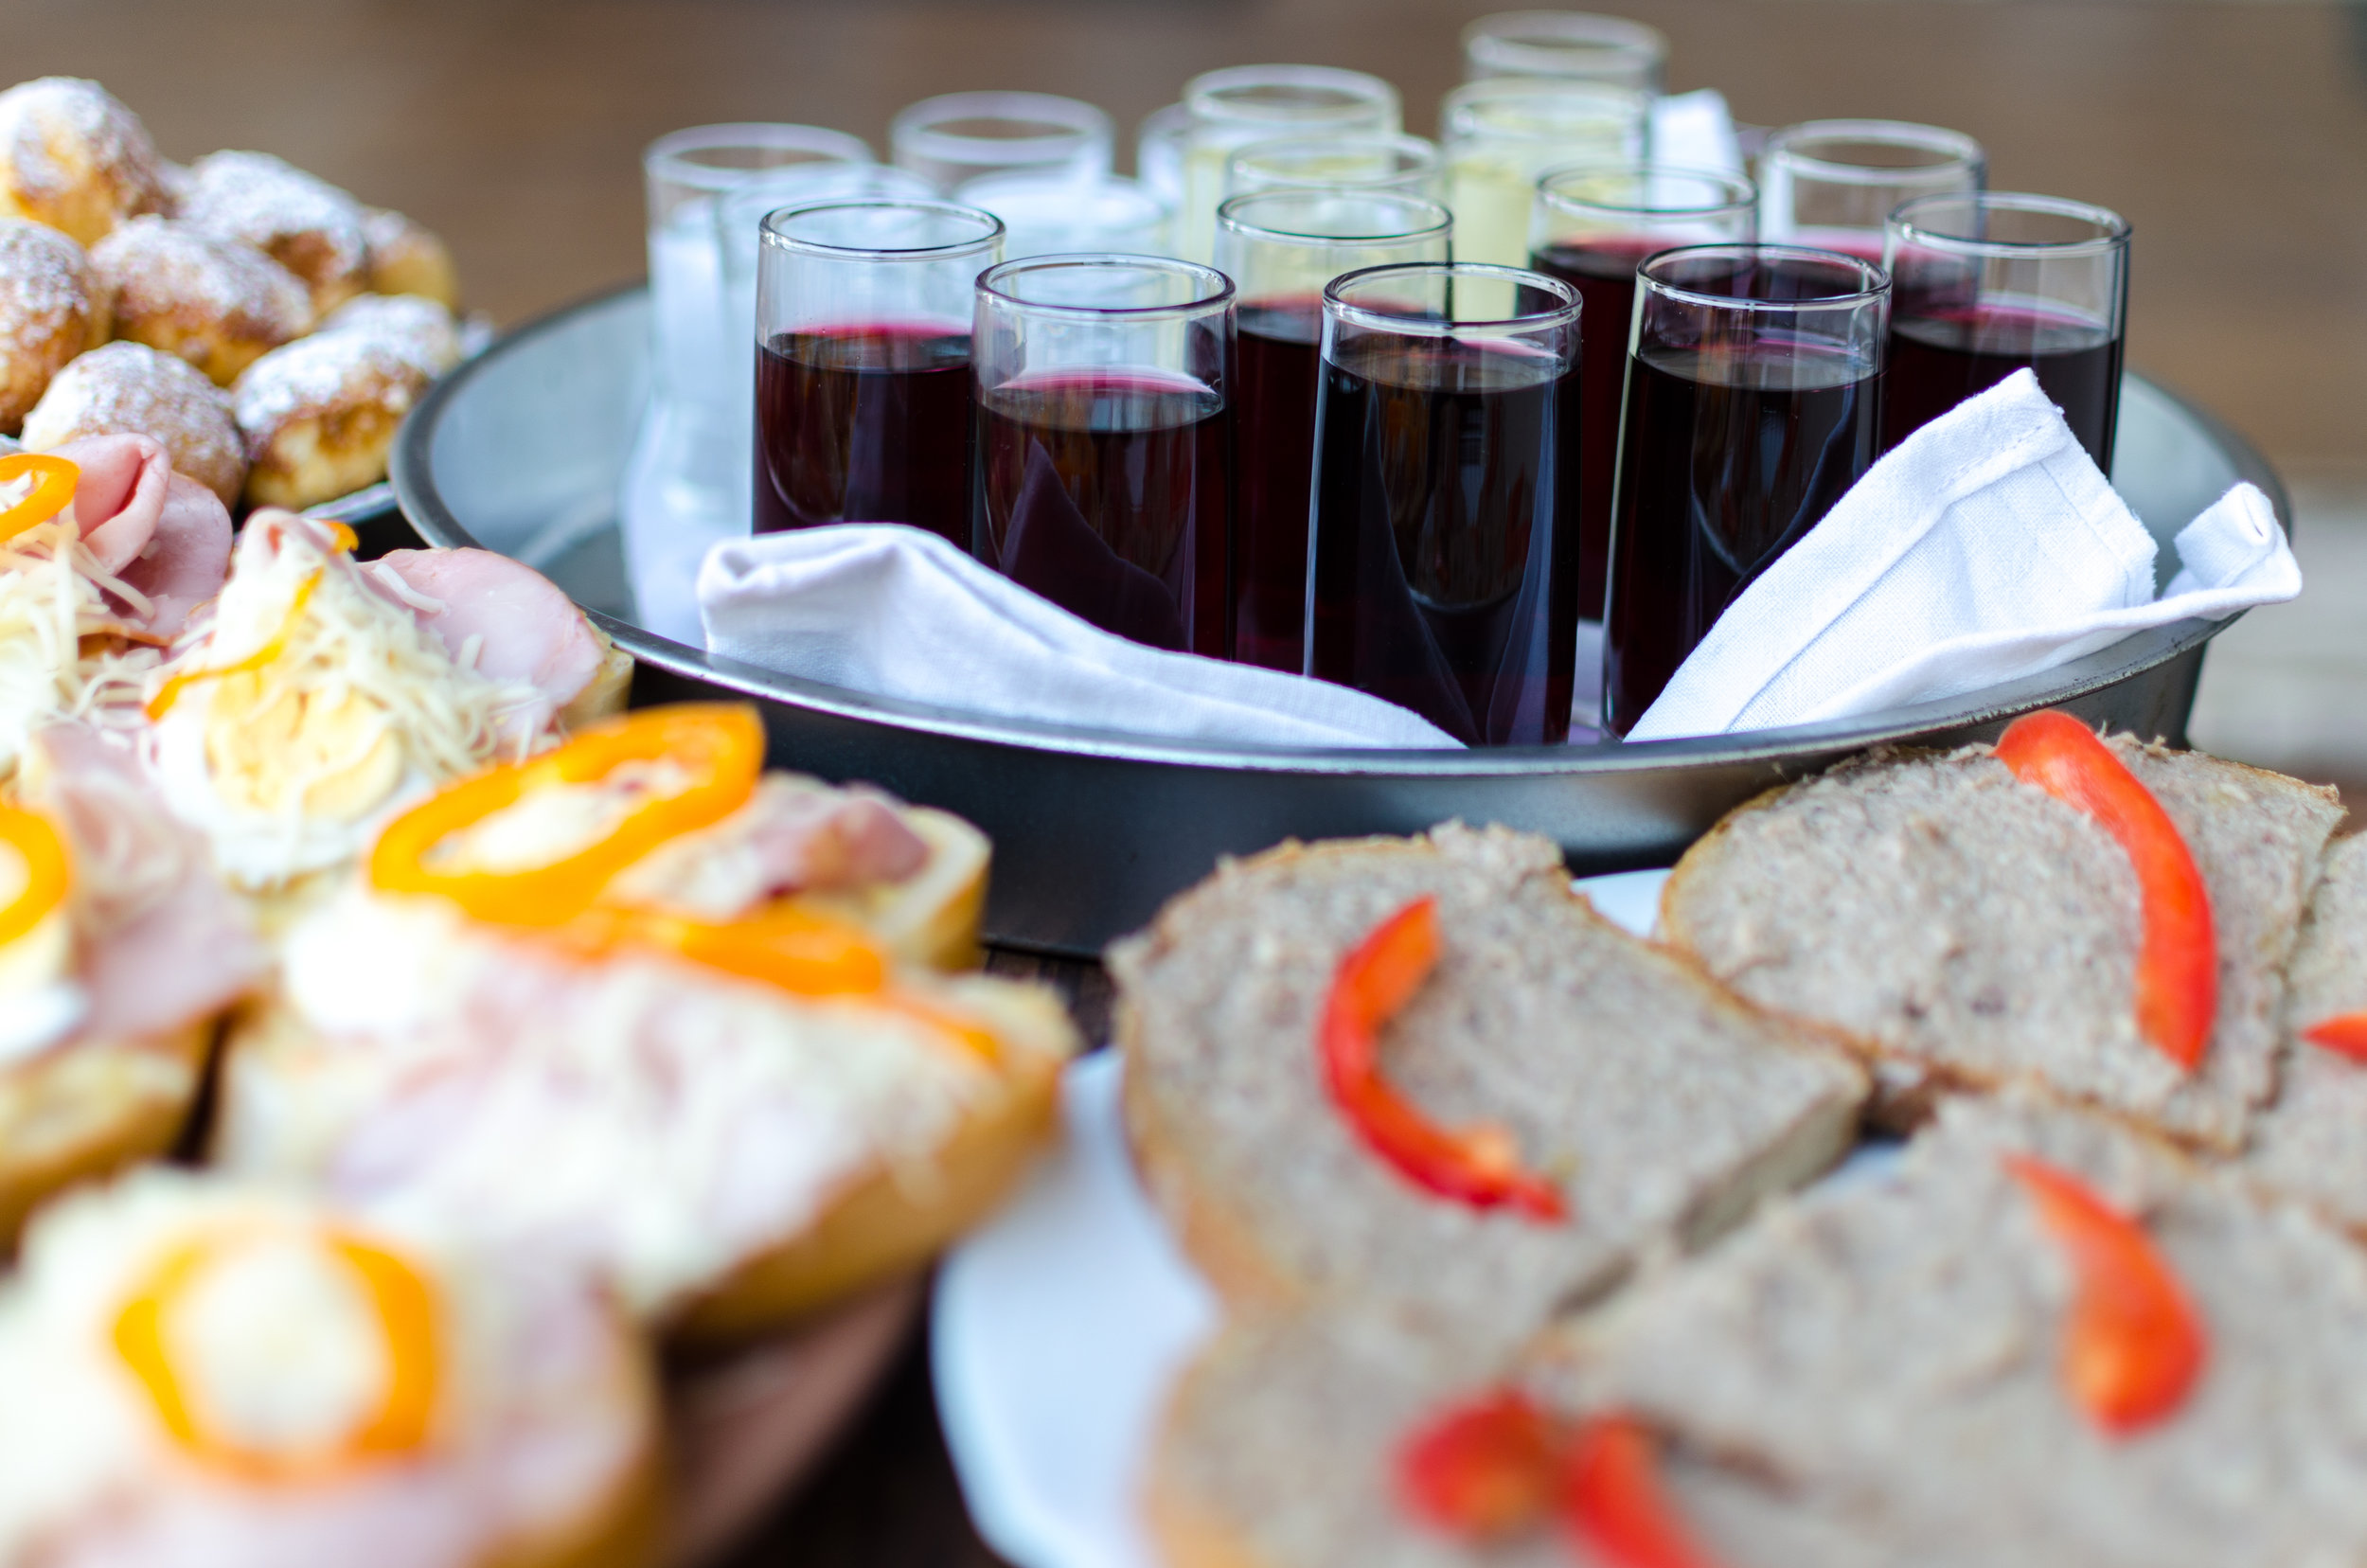 Canva - Table with Food and Alcohol on Wedding Day.jpg